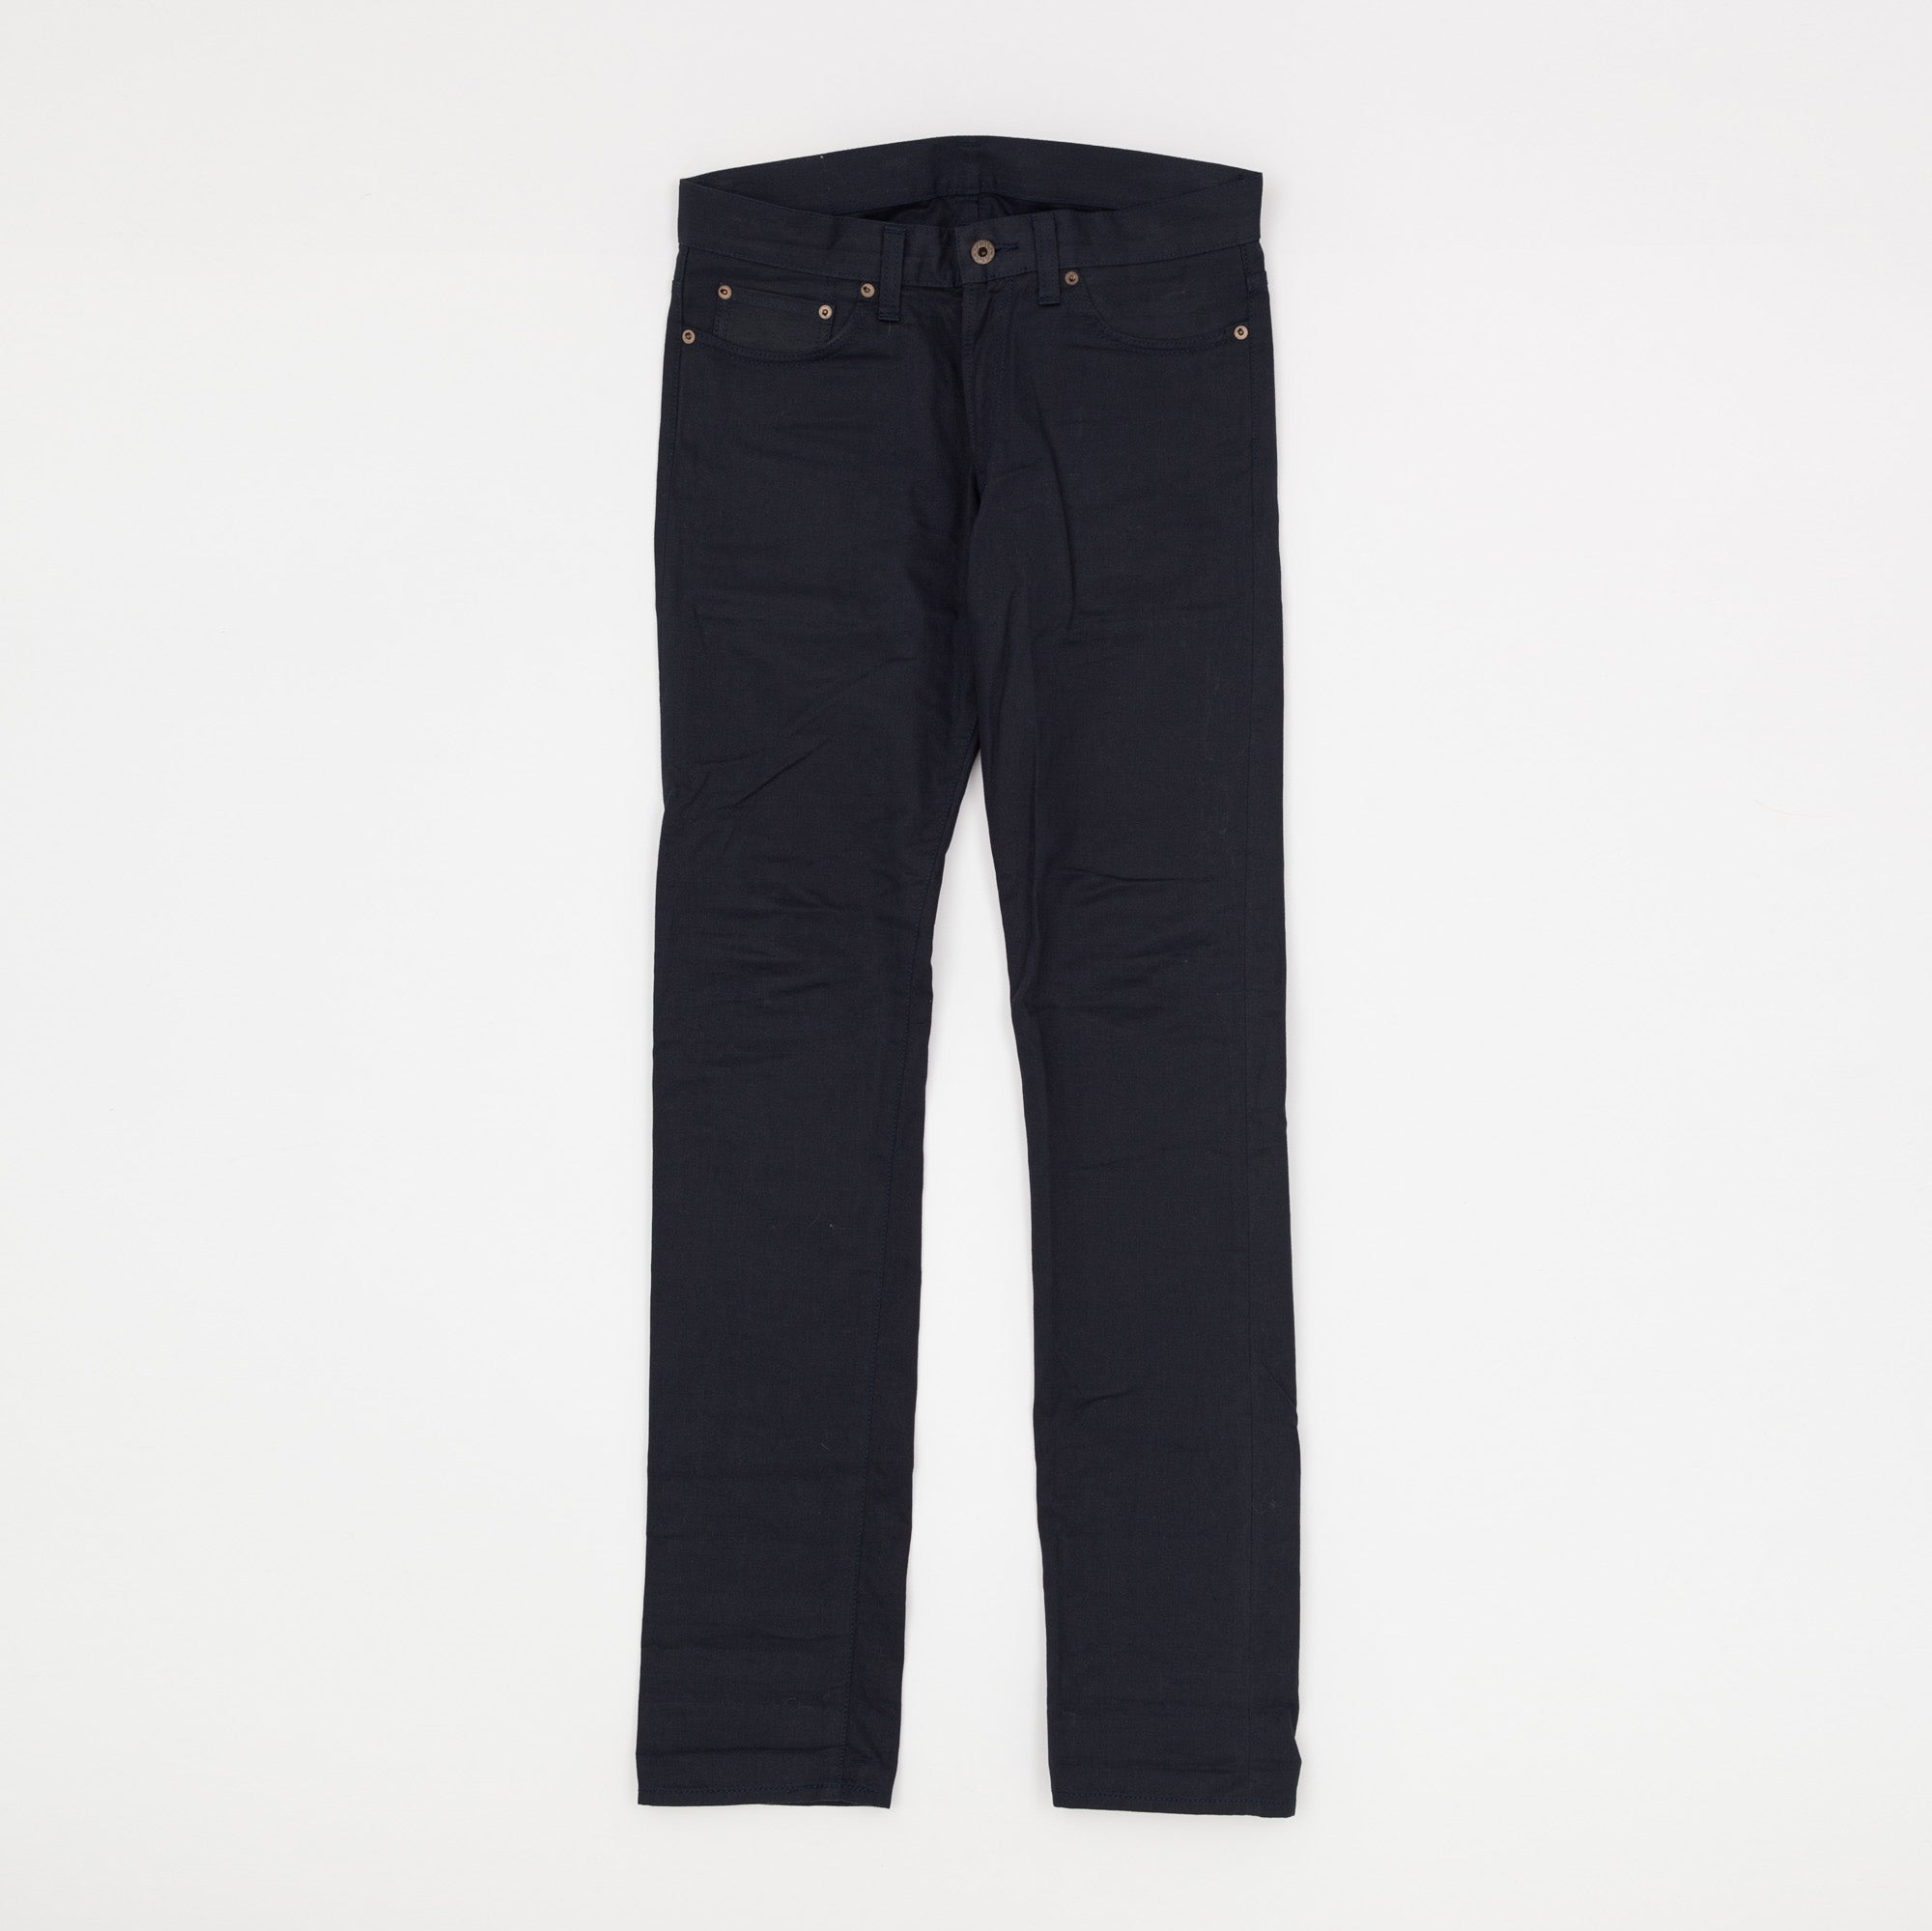 Japan Blue 12oz Selvedge Chino Pant